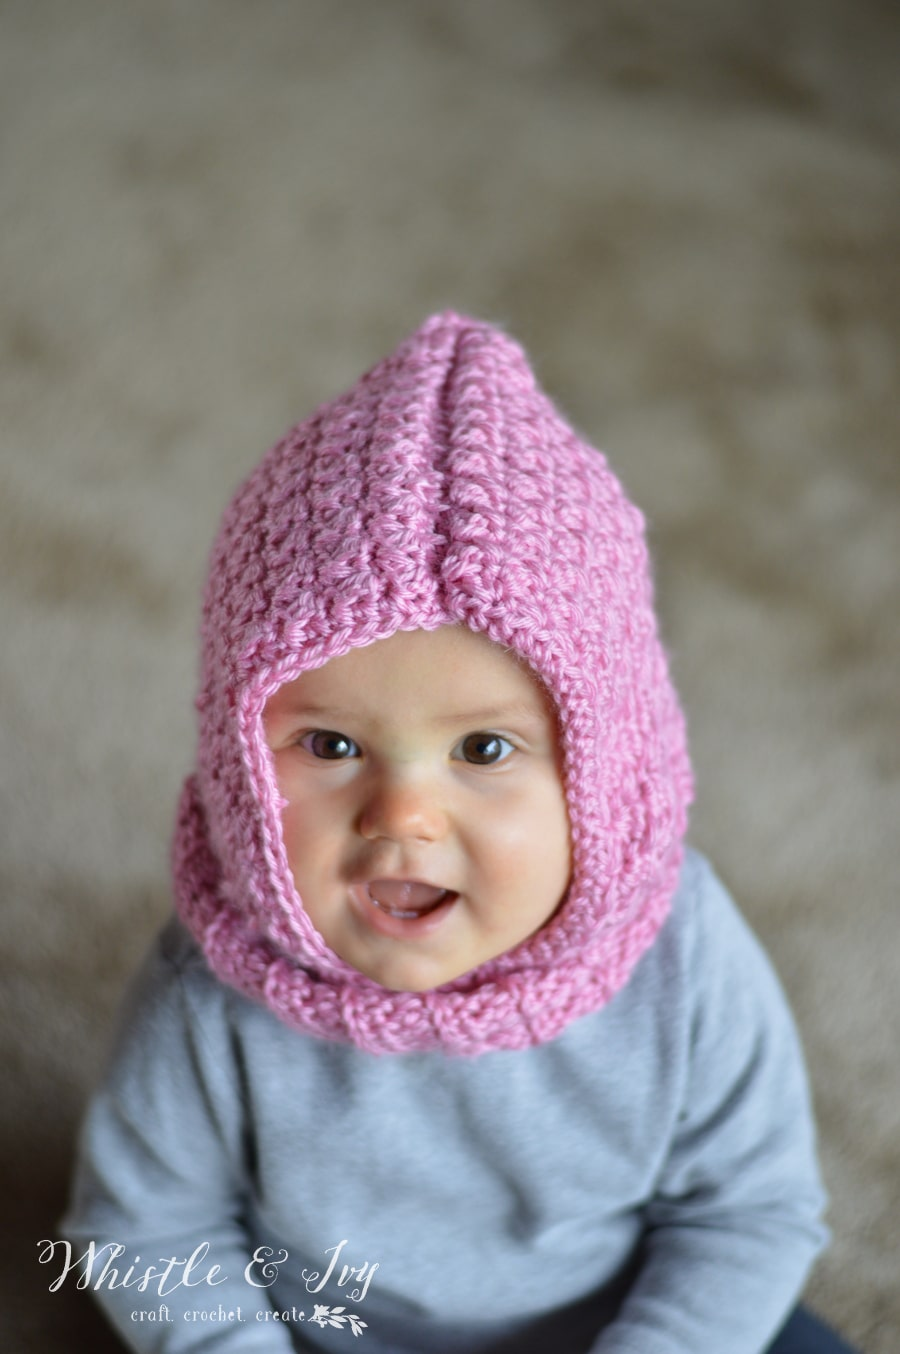 Crochet Baby Cowl Pattern Free : Crochet Baby Hooded Cowl - Whistle and Ivy